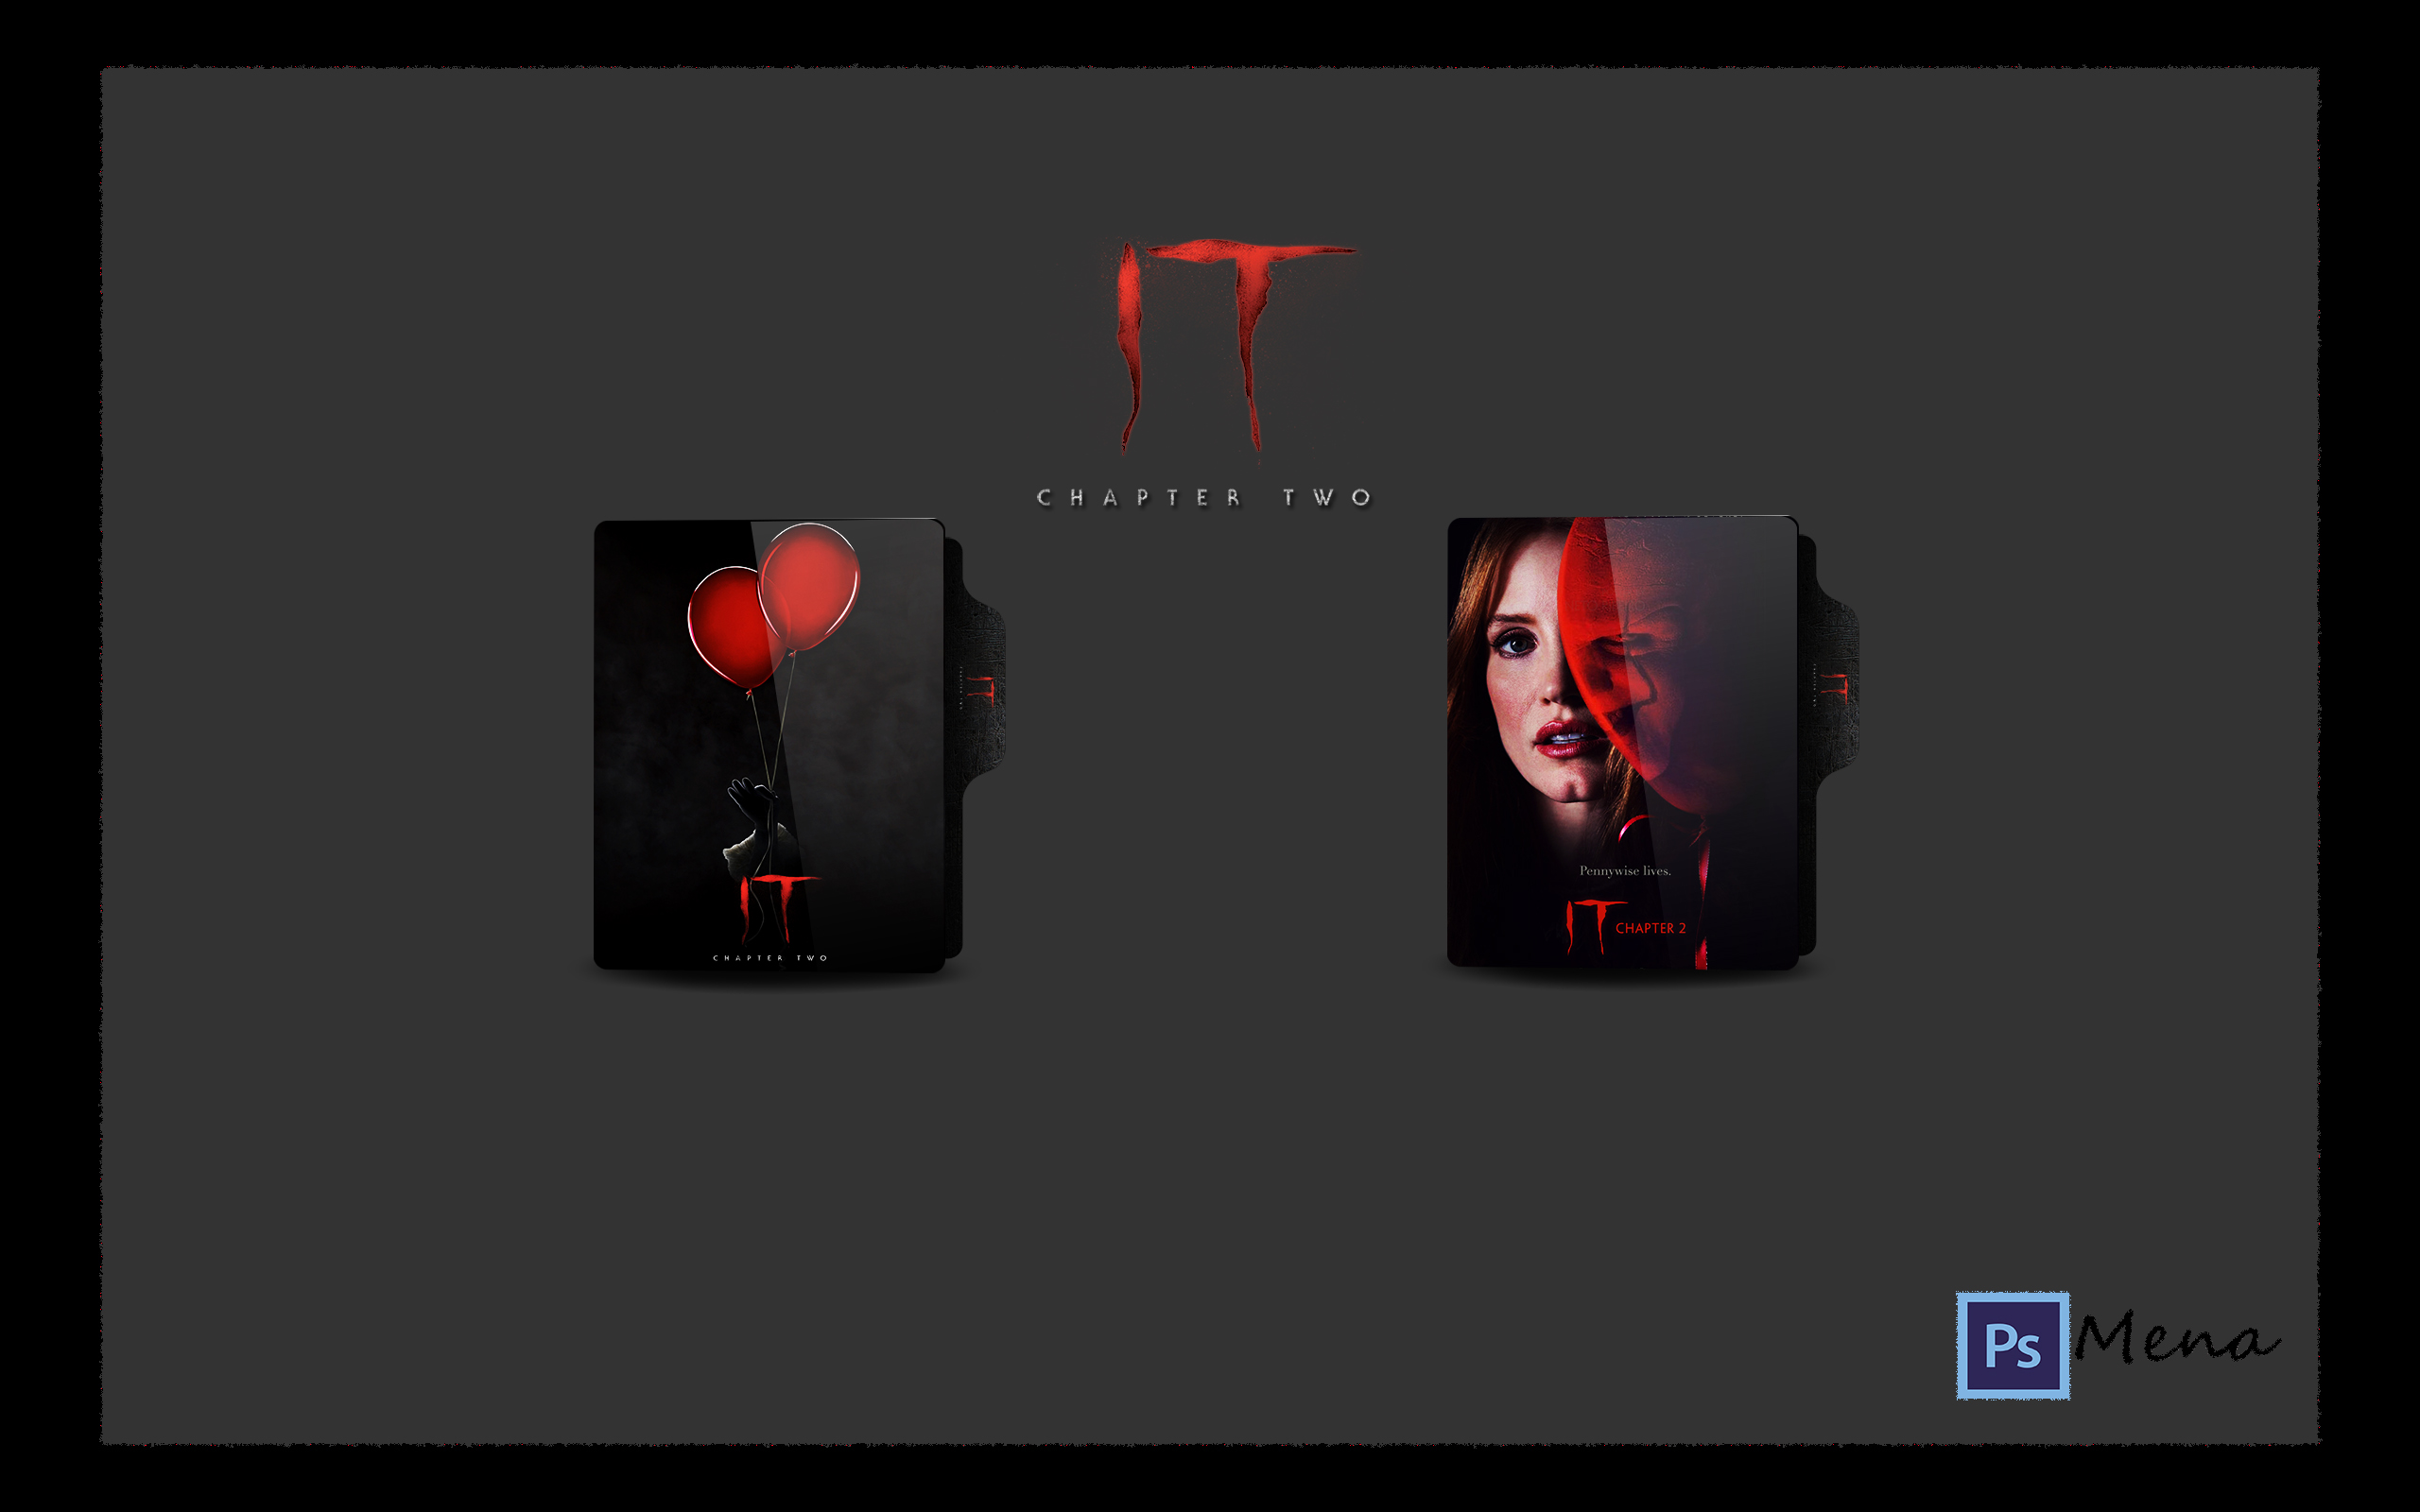 It Chapter Two 2019 Folder Icon By Mena7 On Deviantart